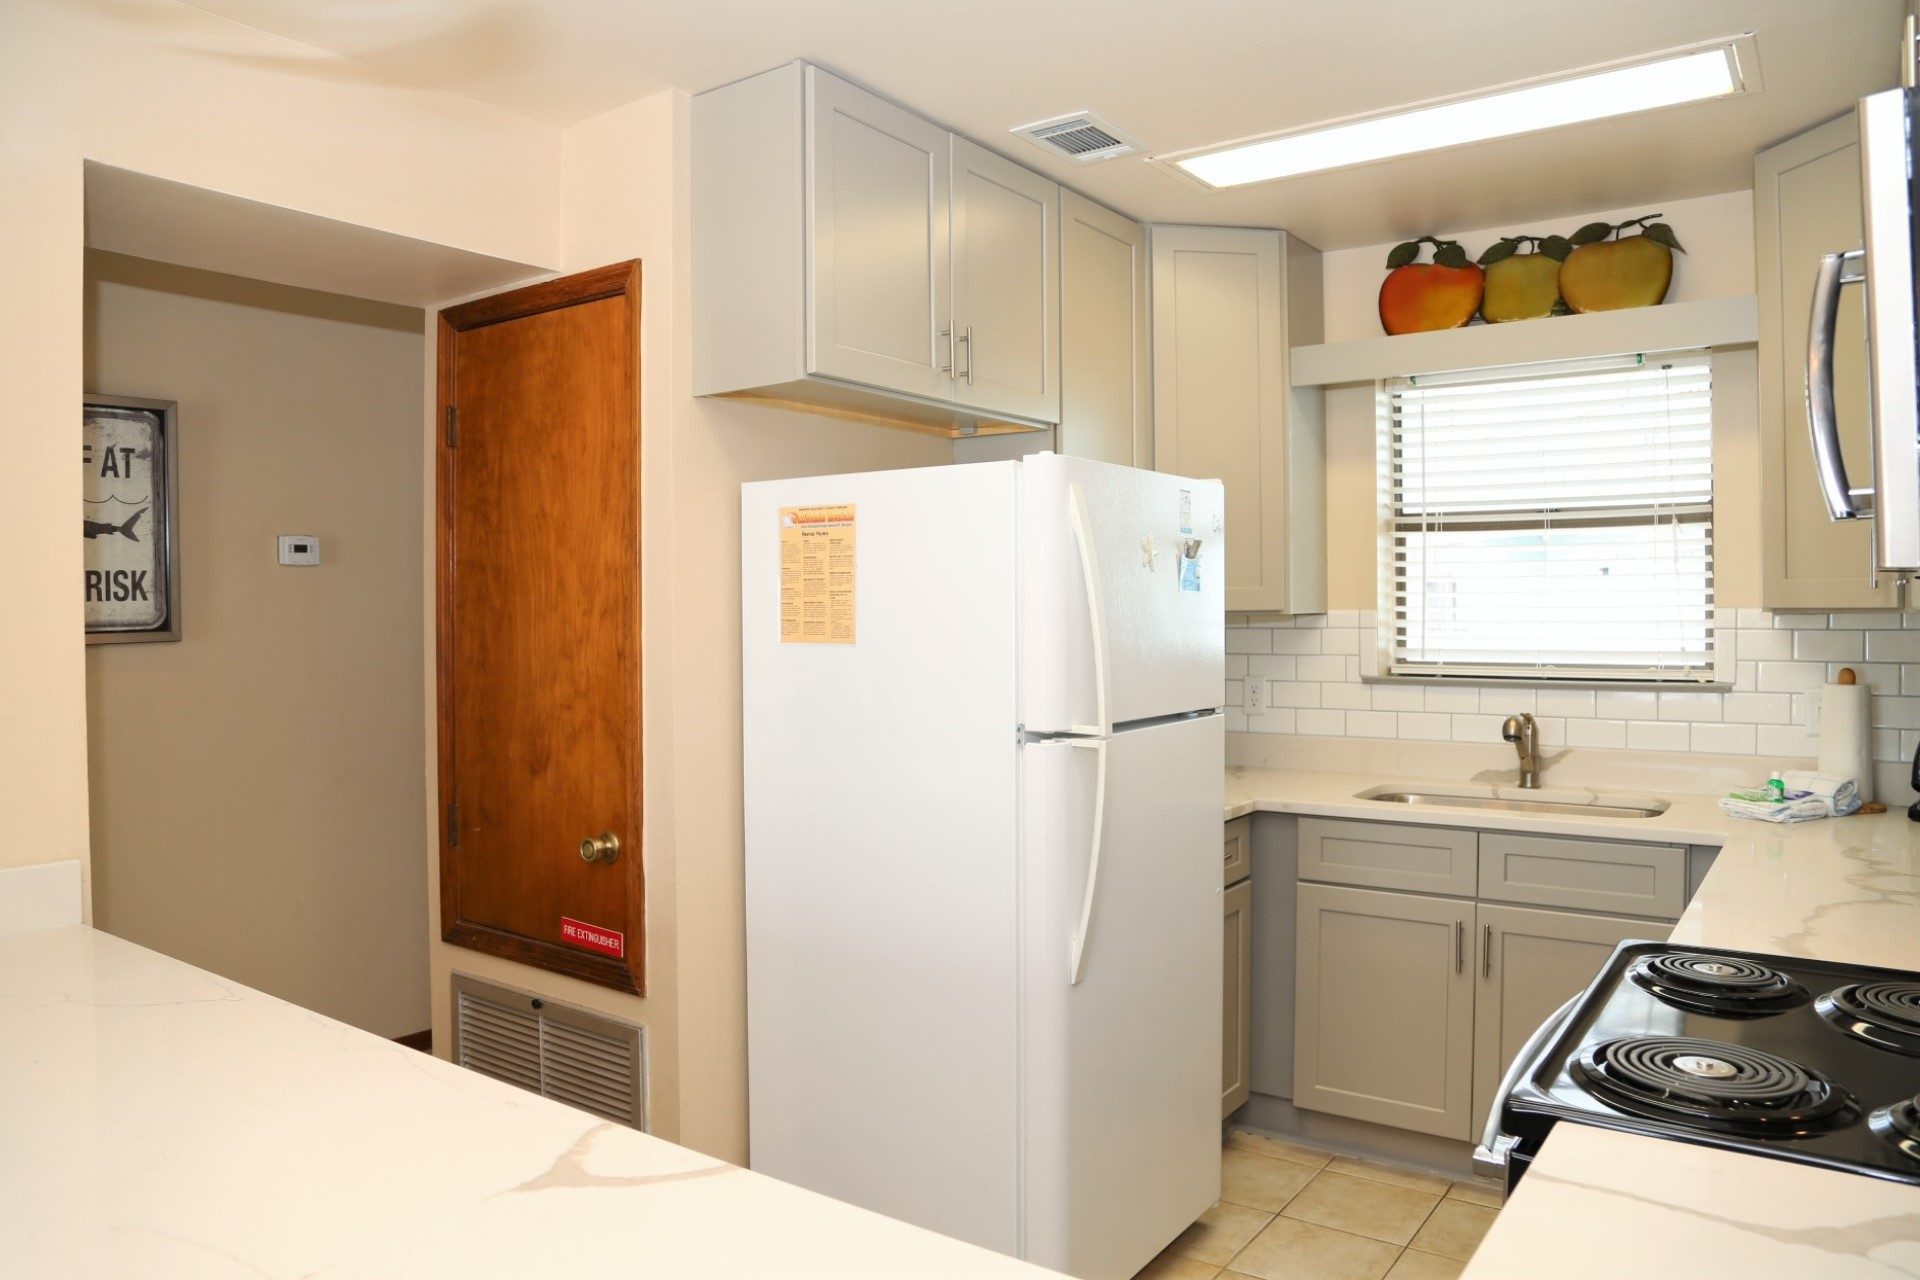 Fully equipped kitchen with all the essentials.